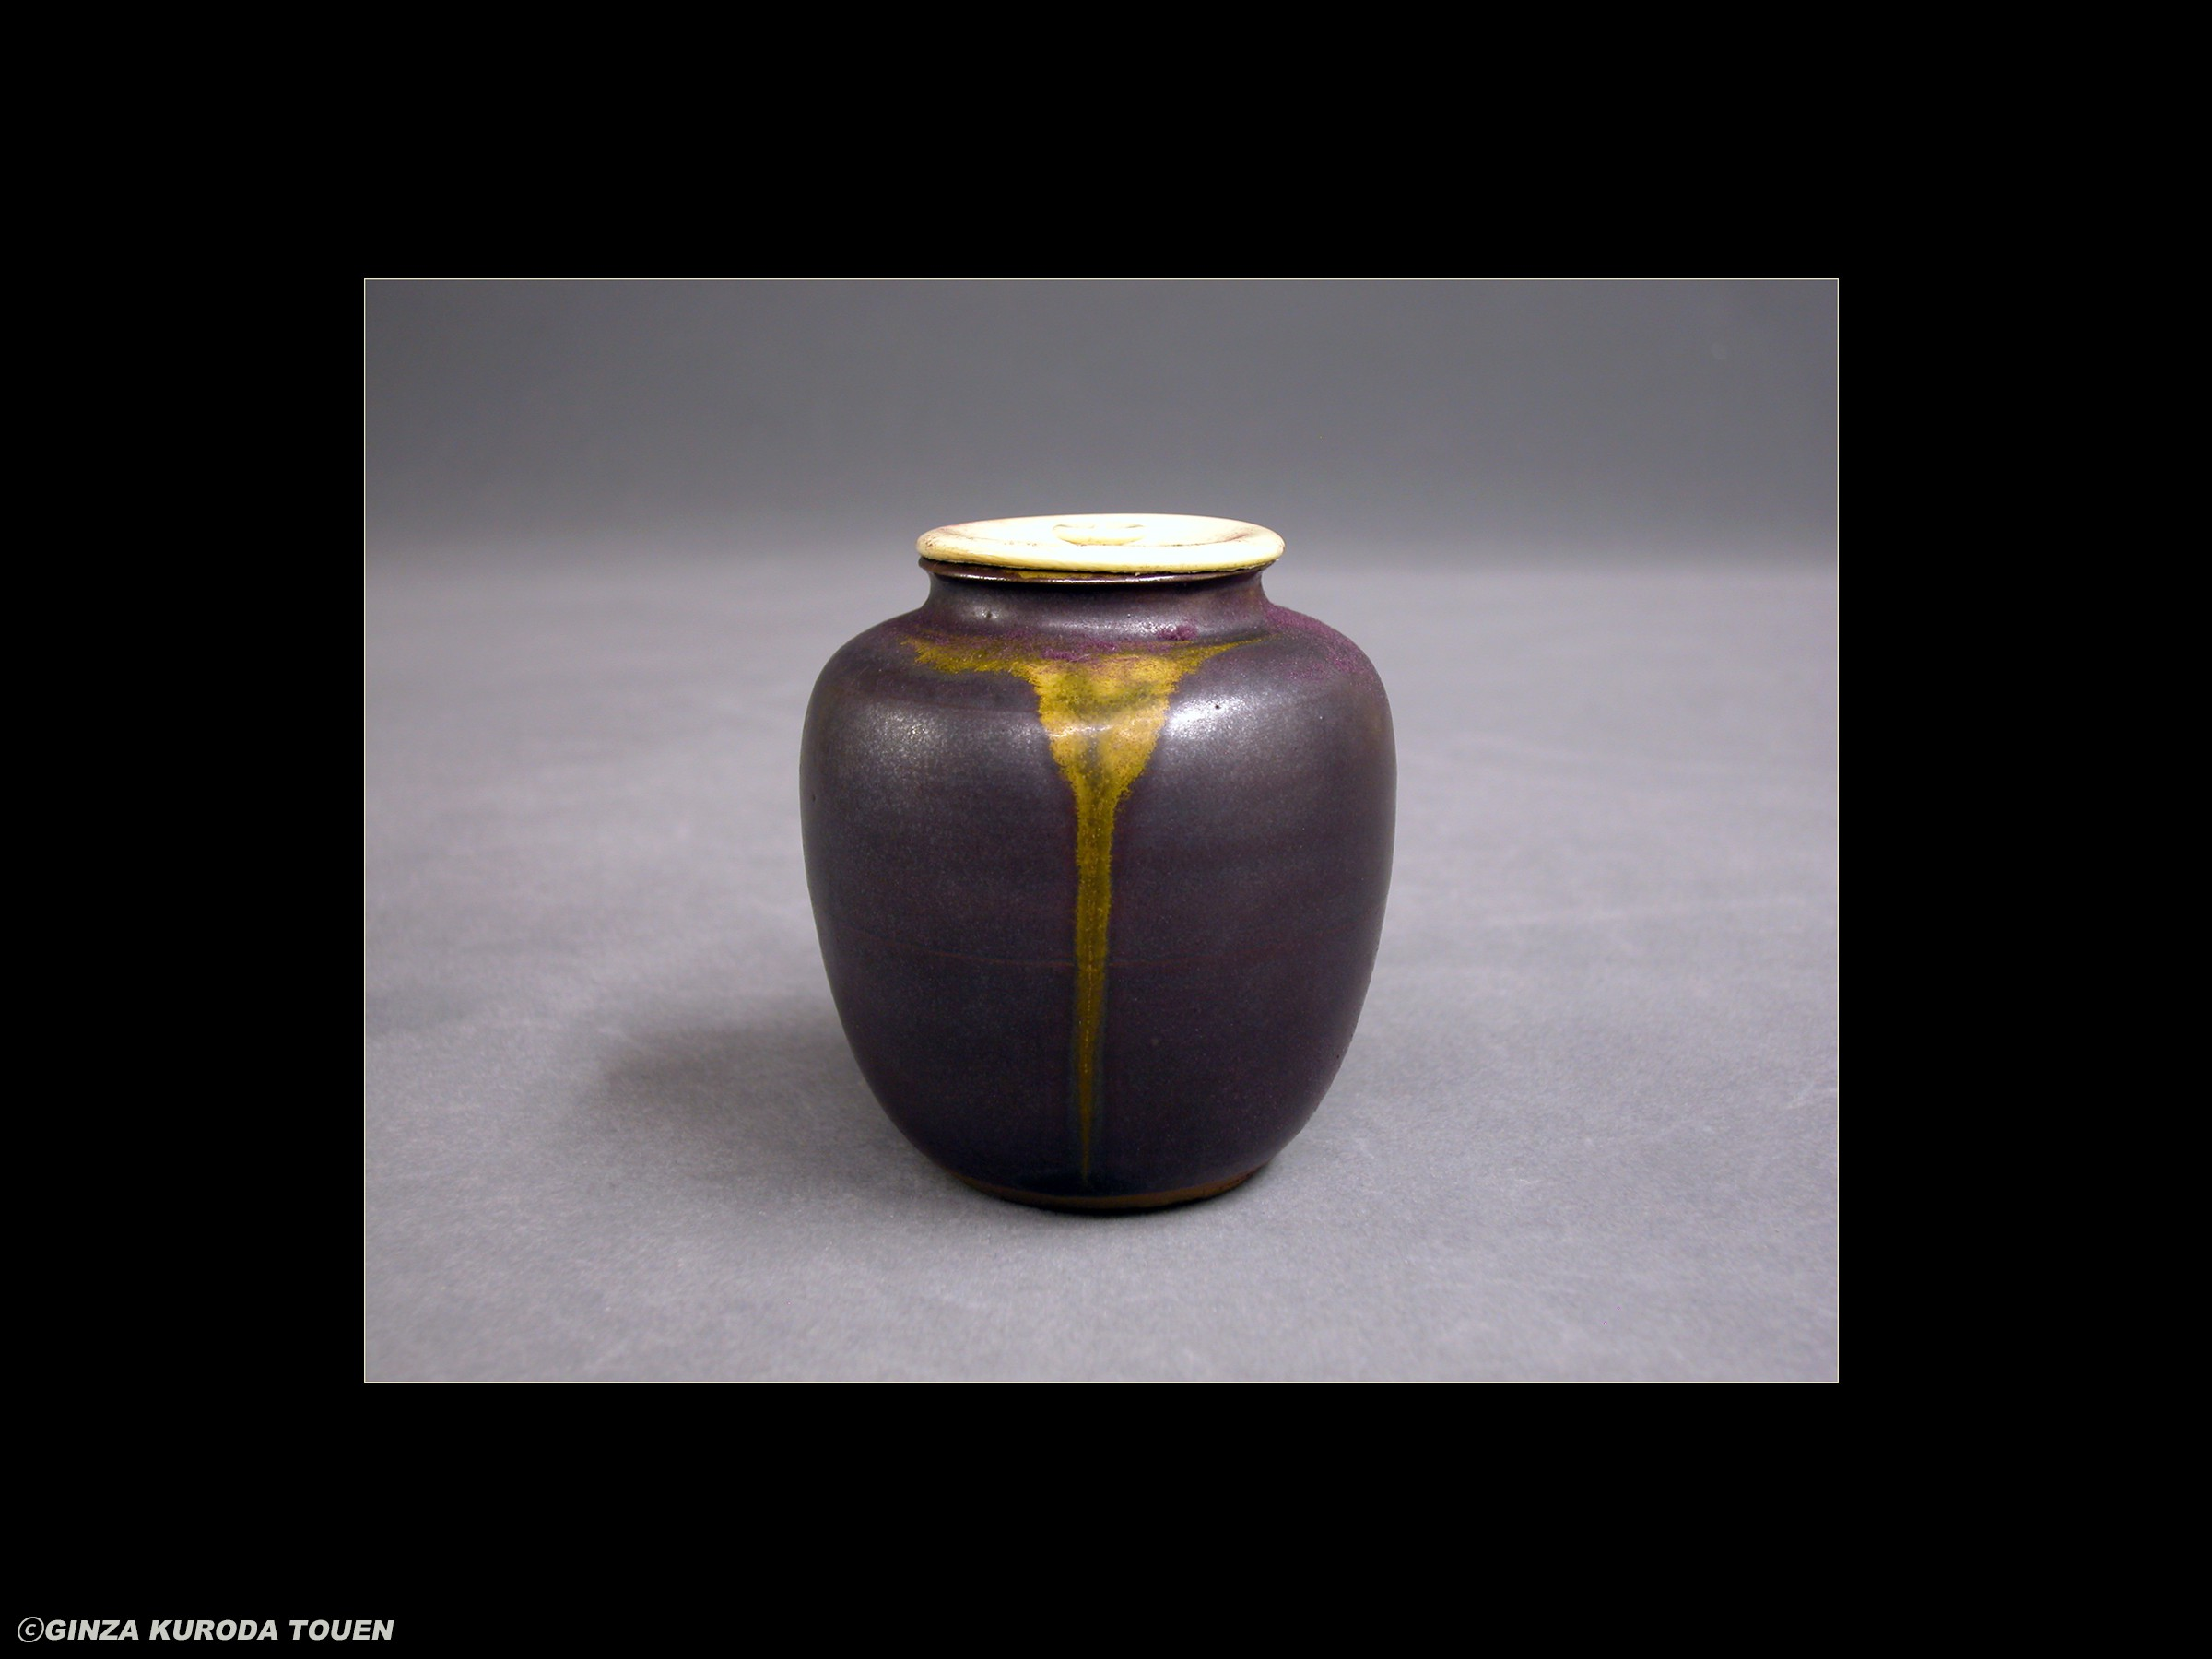 Hazan Itaya: Tea container